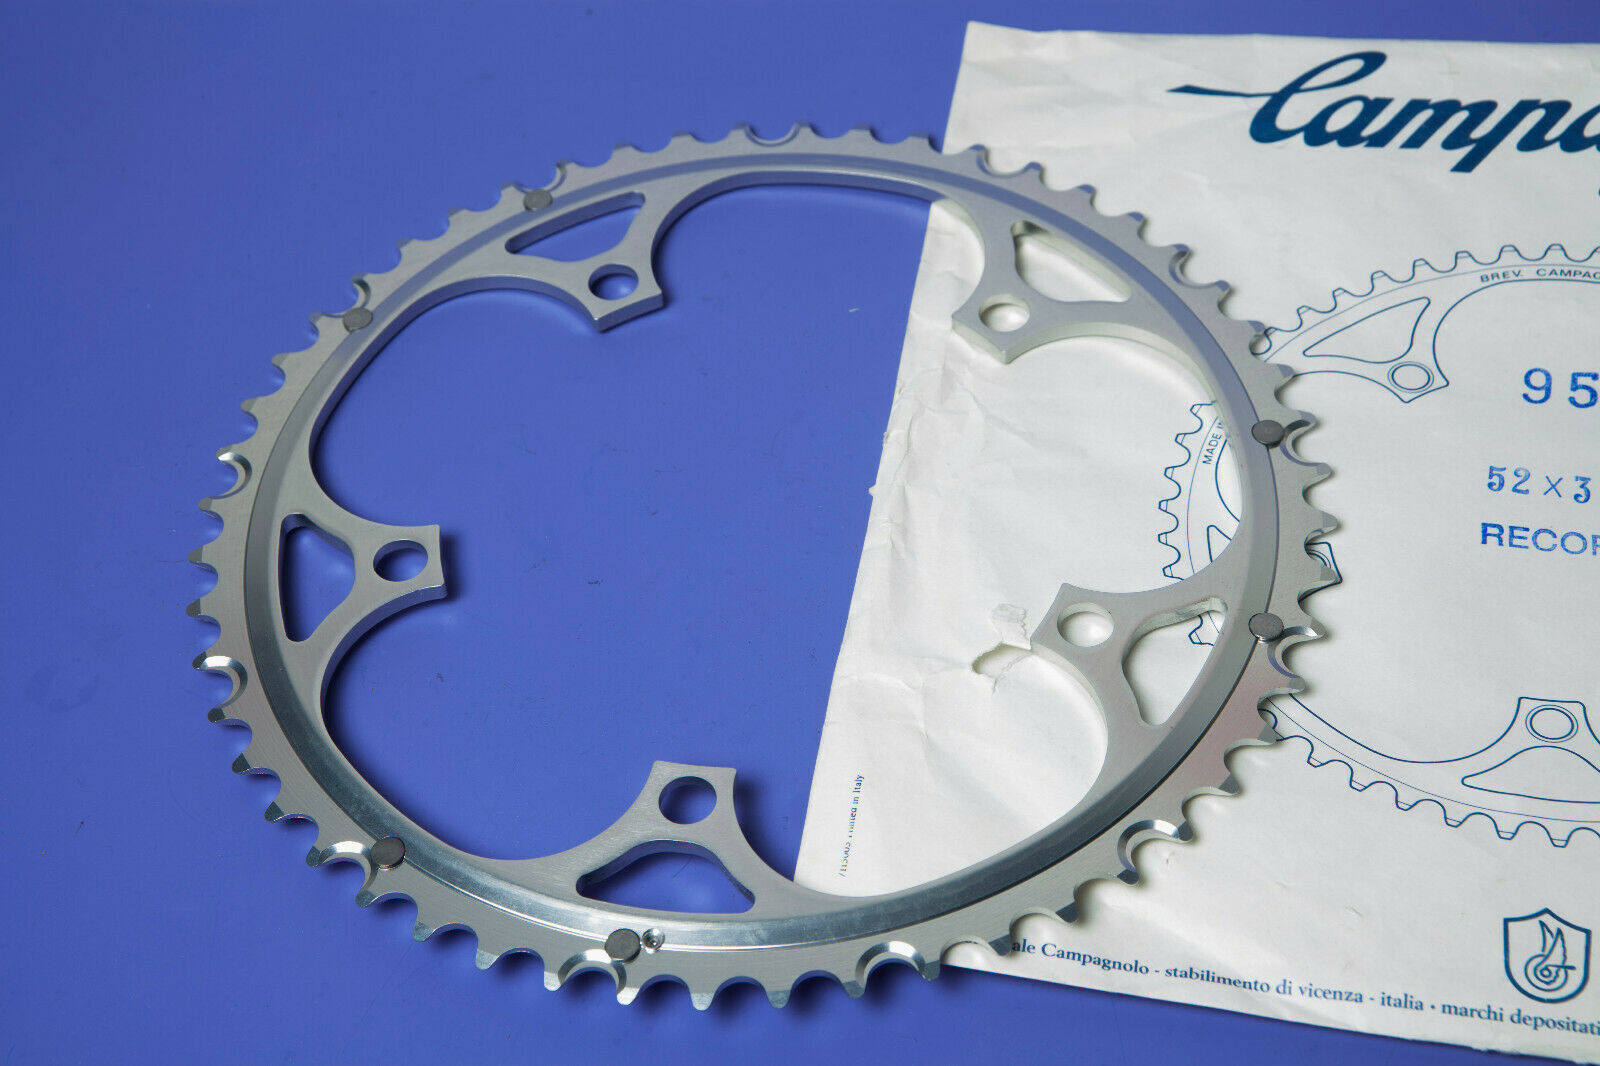 VINTAGE CAMPAGNOLO RECORD CHAINRING 52 x 39t BCD 135 NEW OLD STOCK  NUOVA NOS